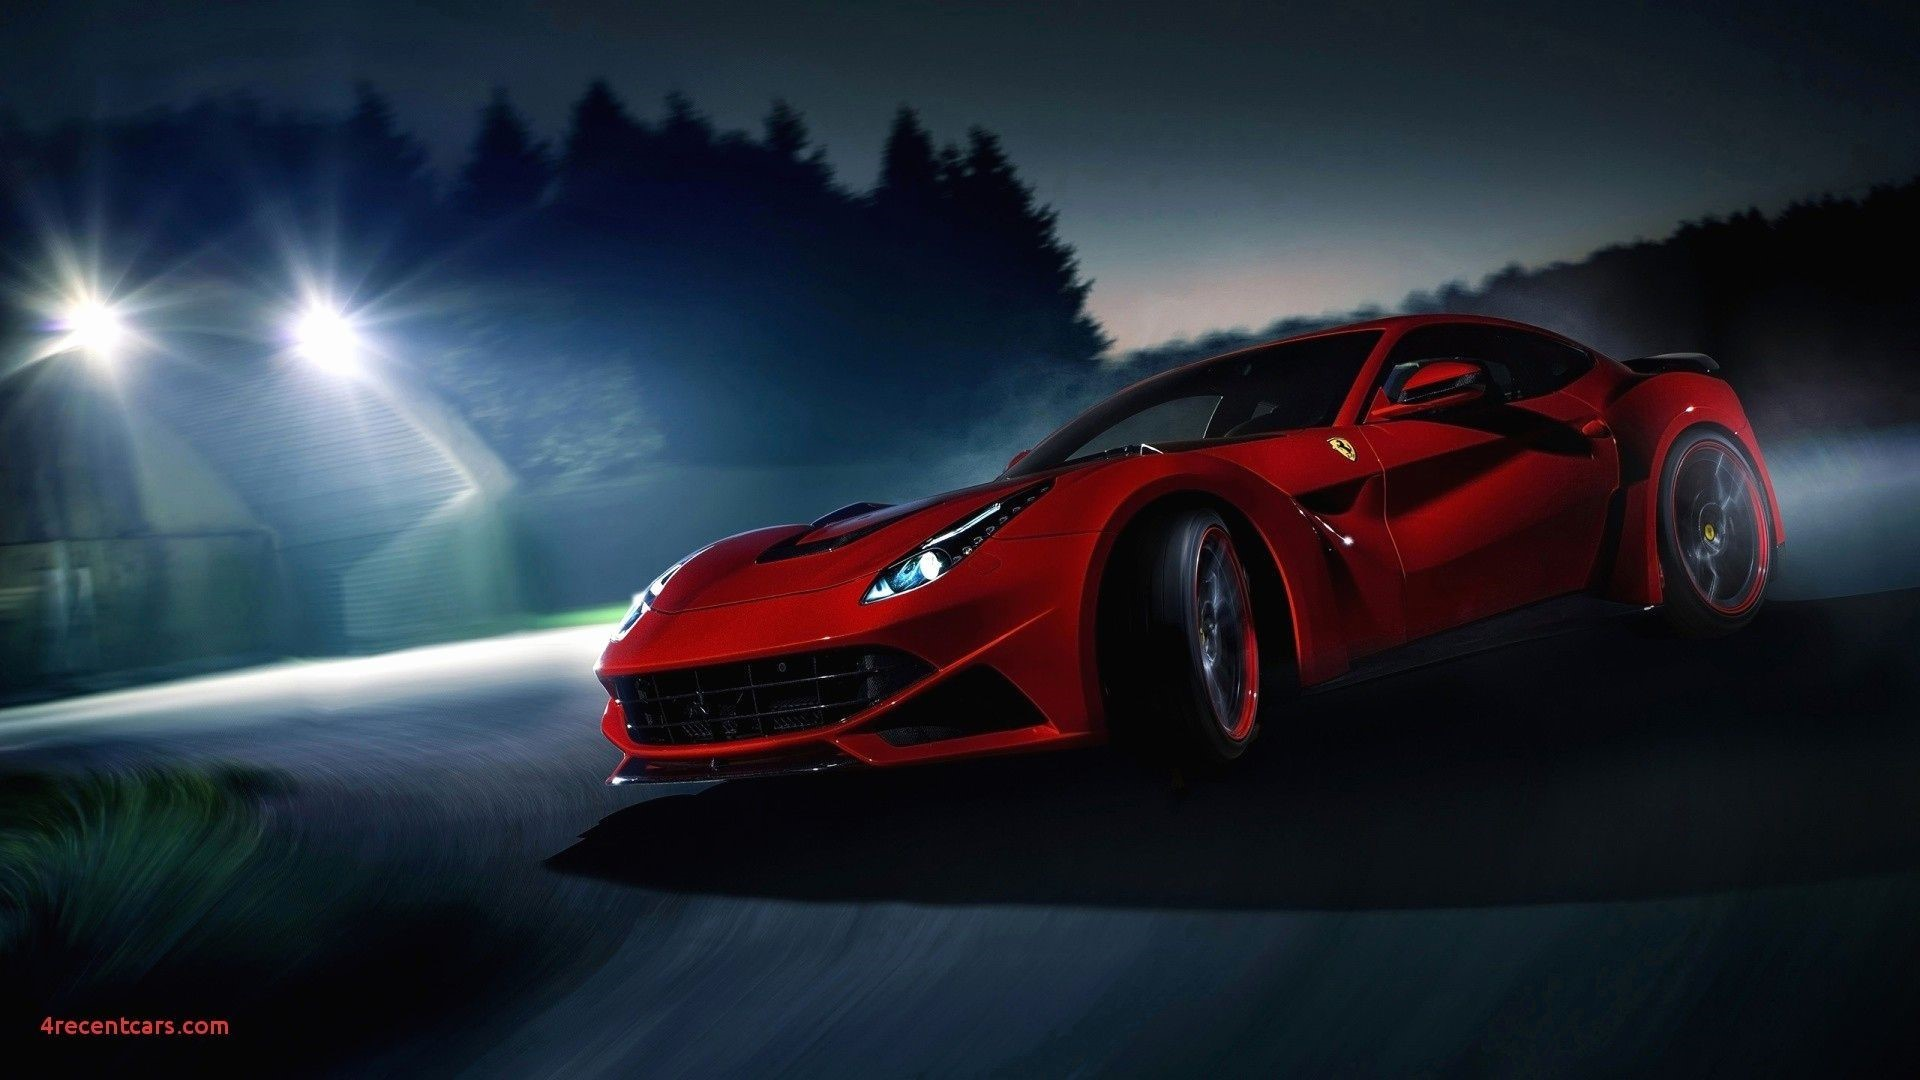 Awesome Cars Background